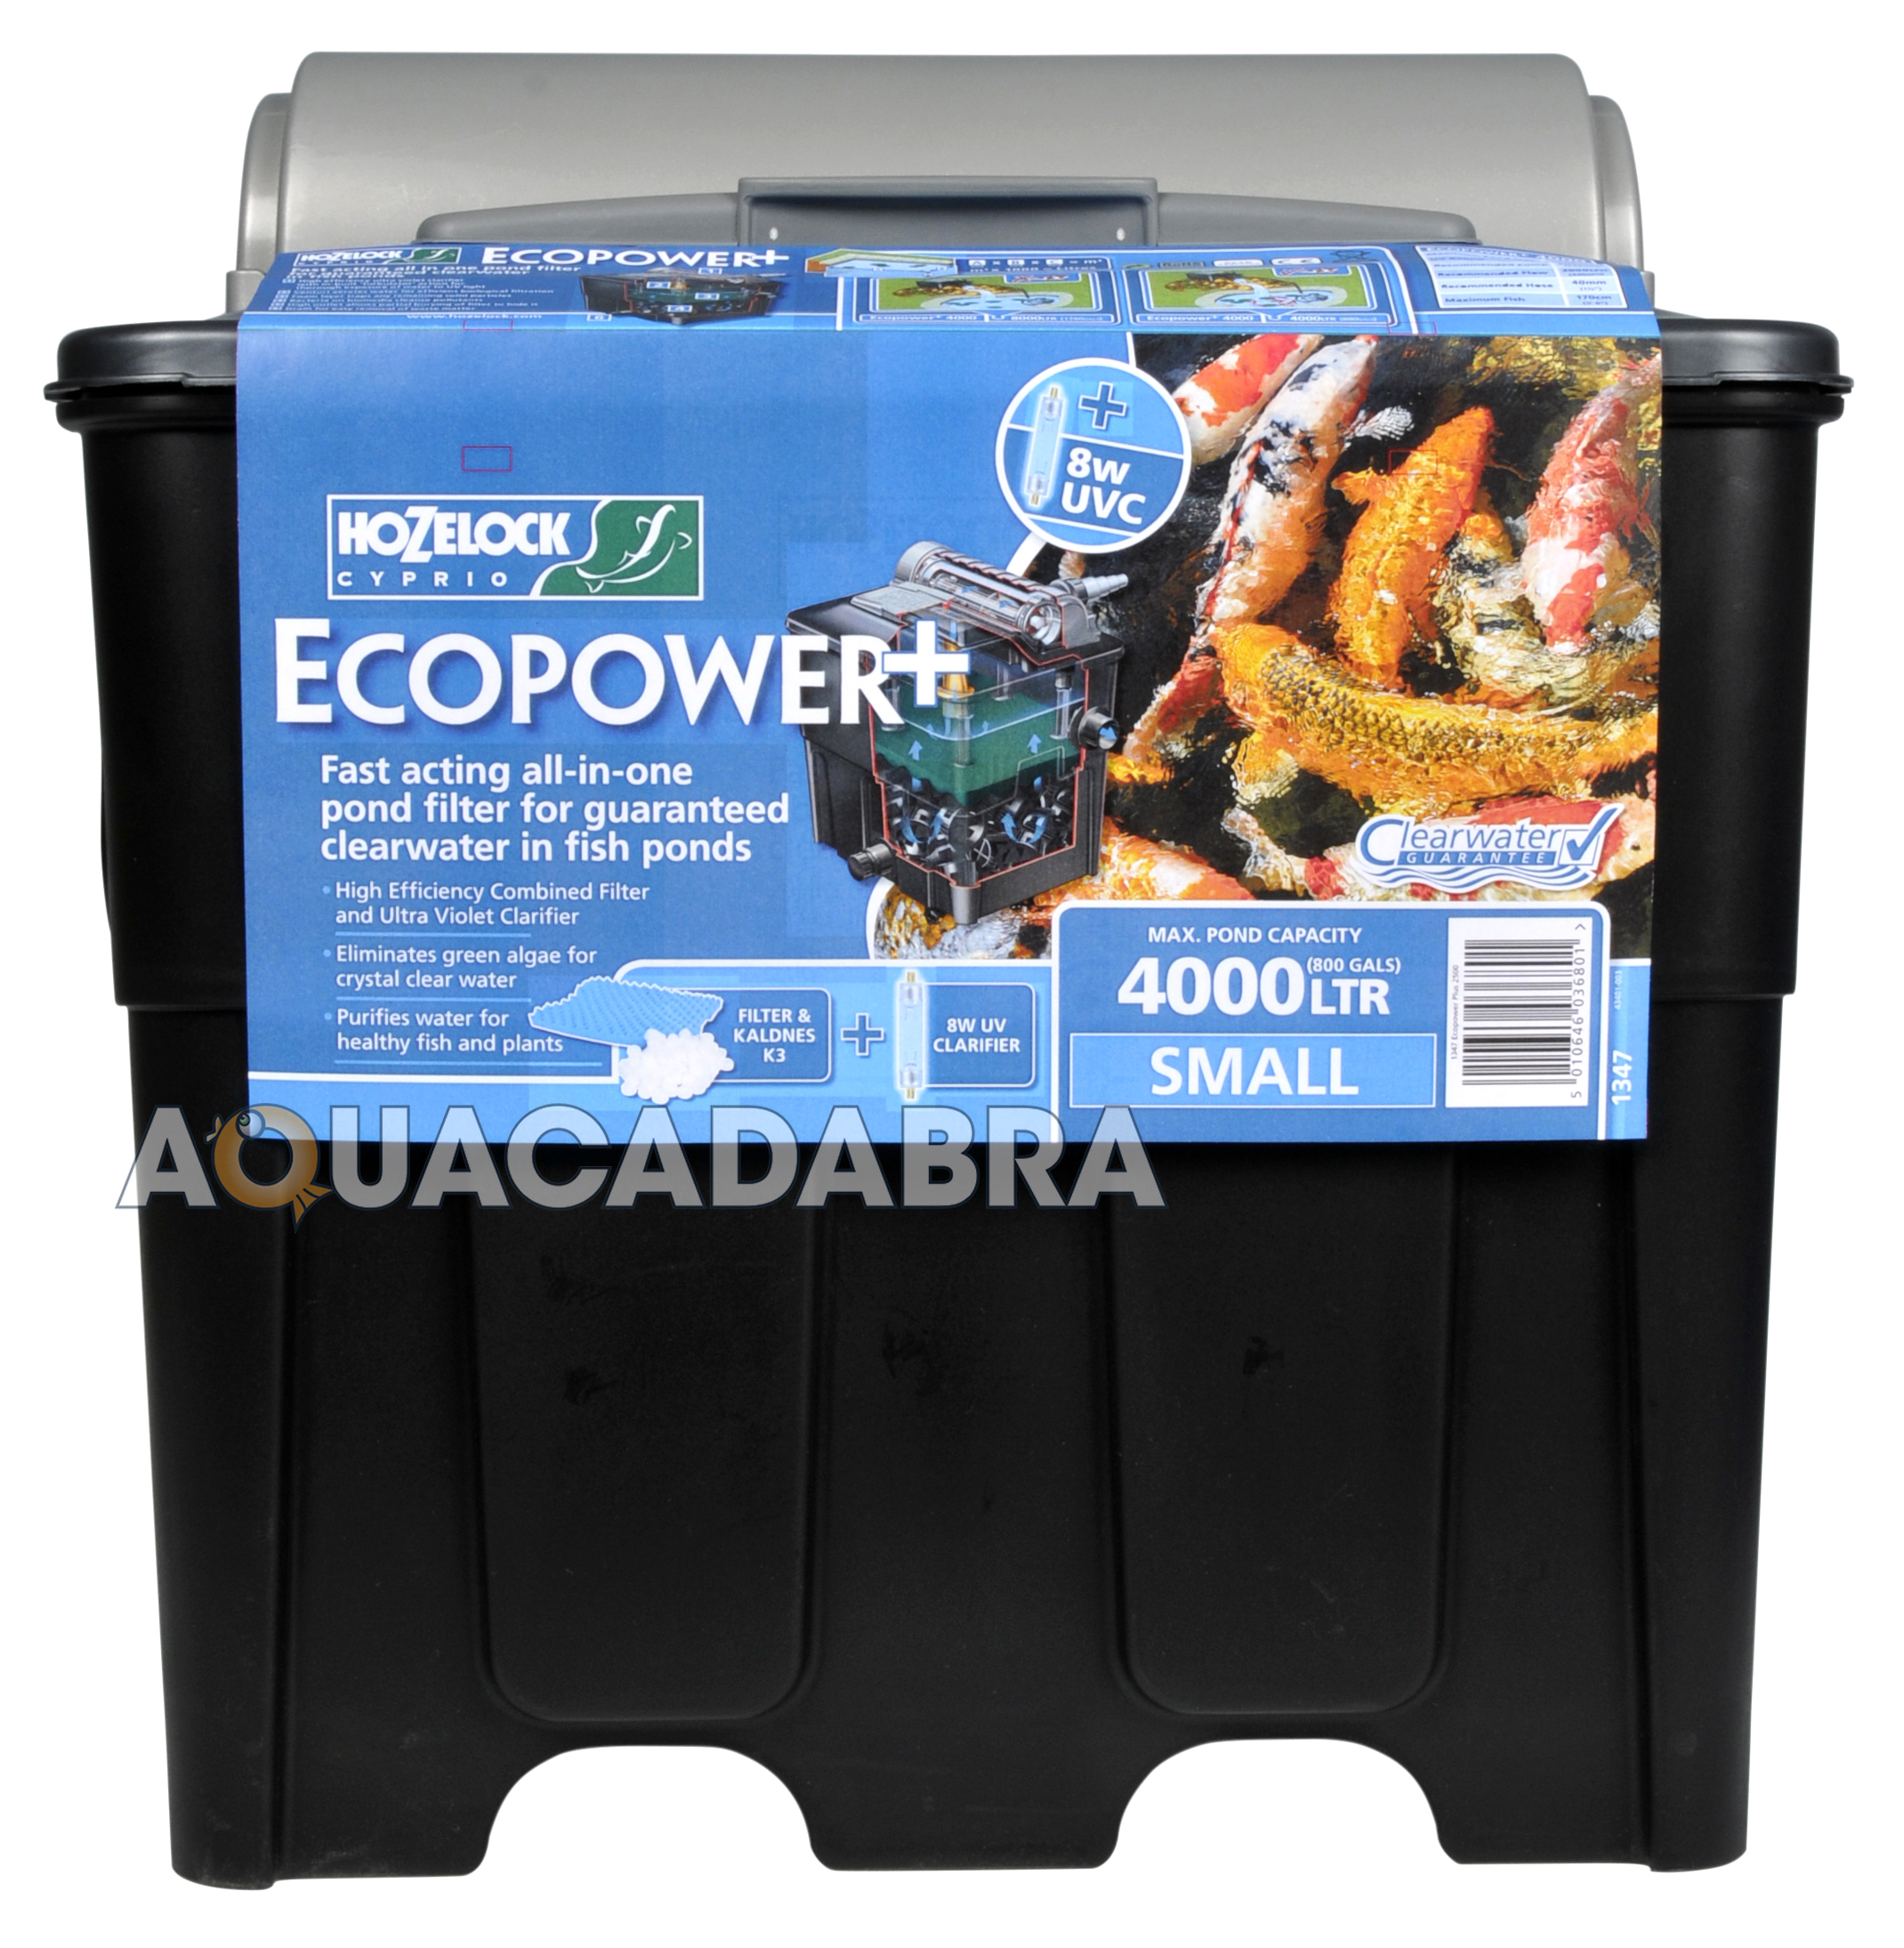 UV Bulb//Lamp//Tube//Light Replacement For Hozelock Ecopower//Eco Max Box Filter